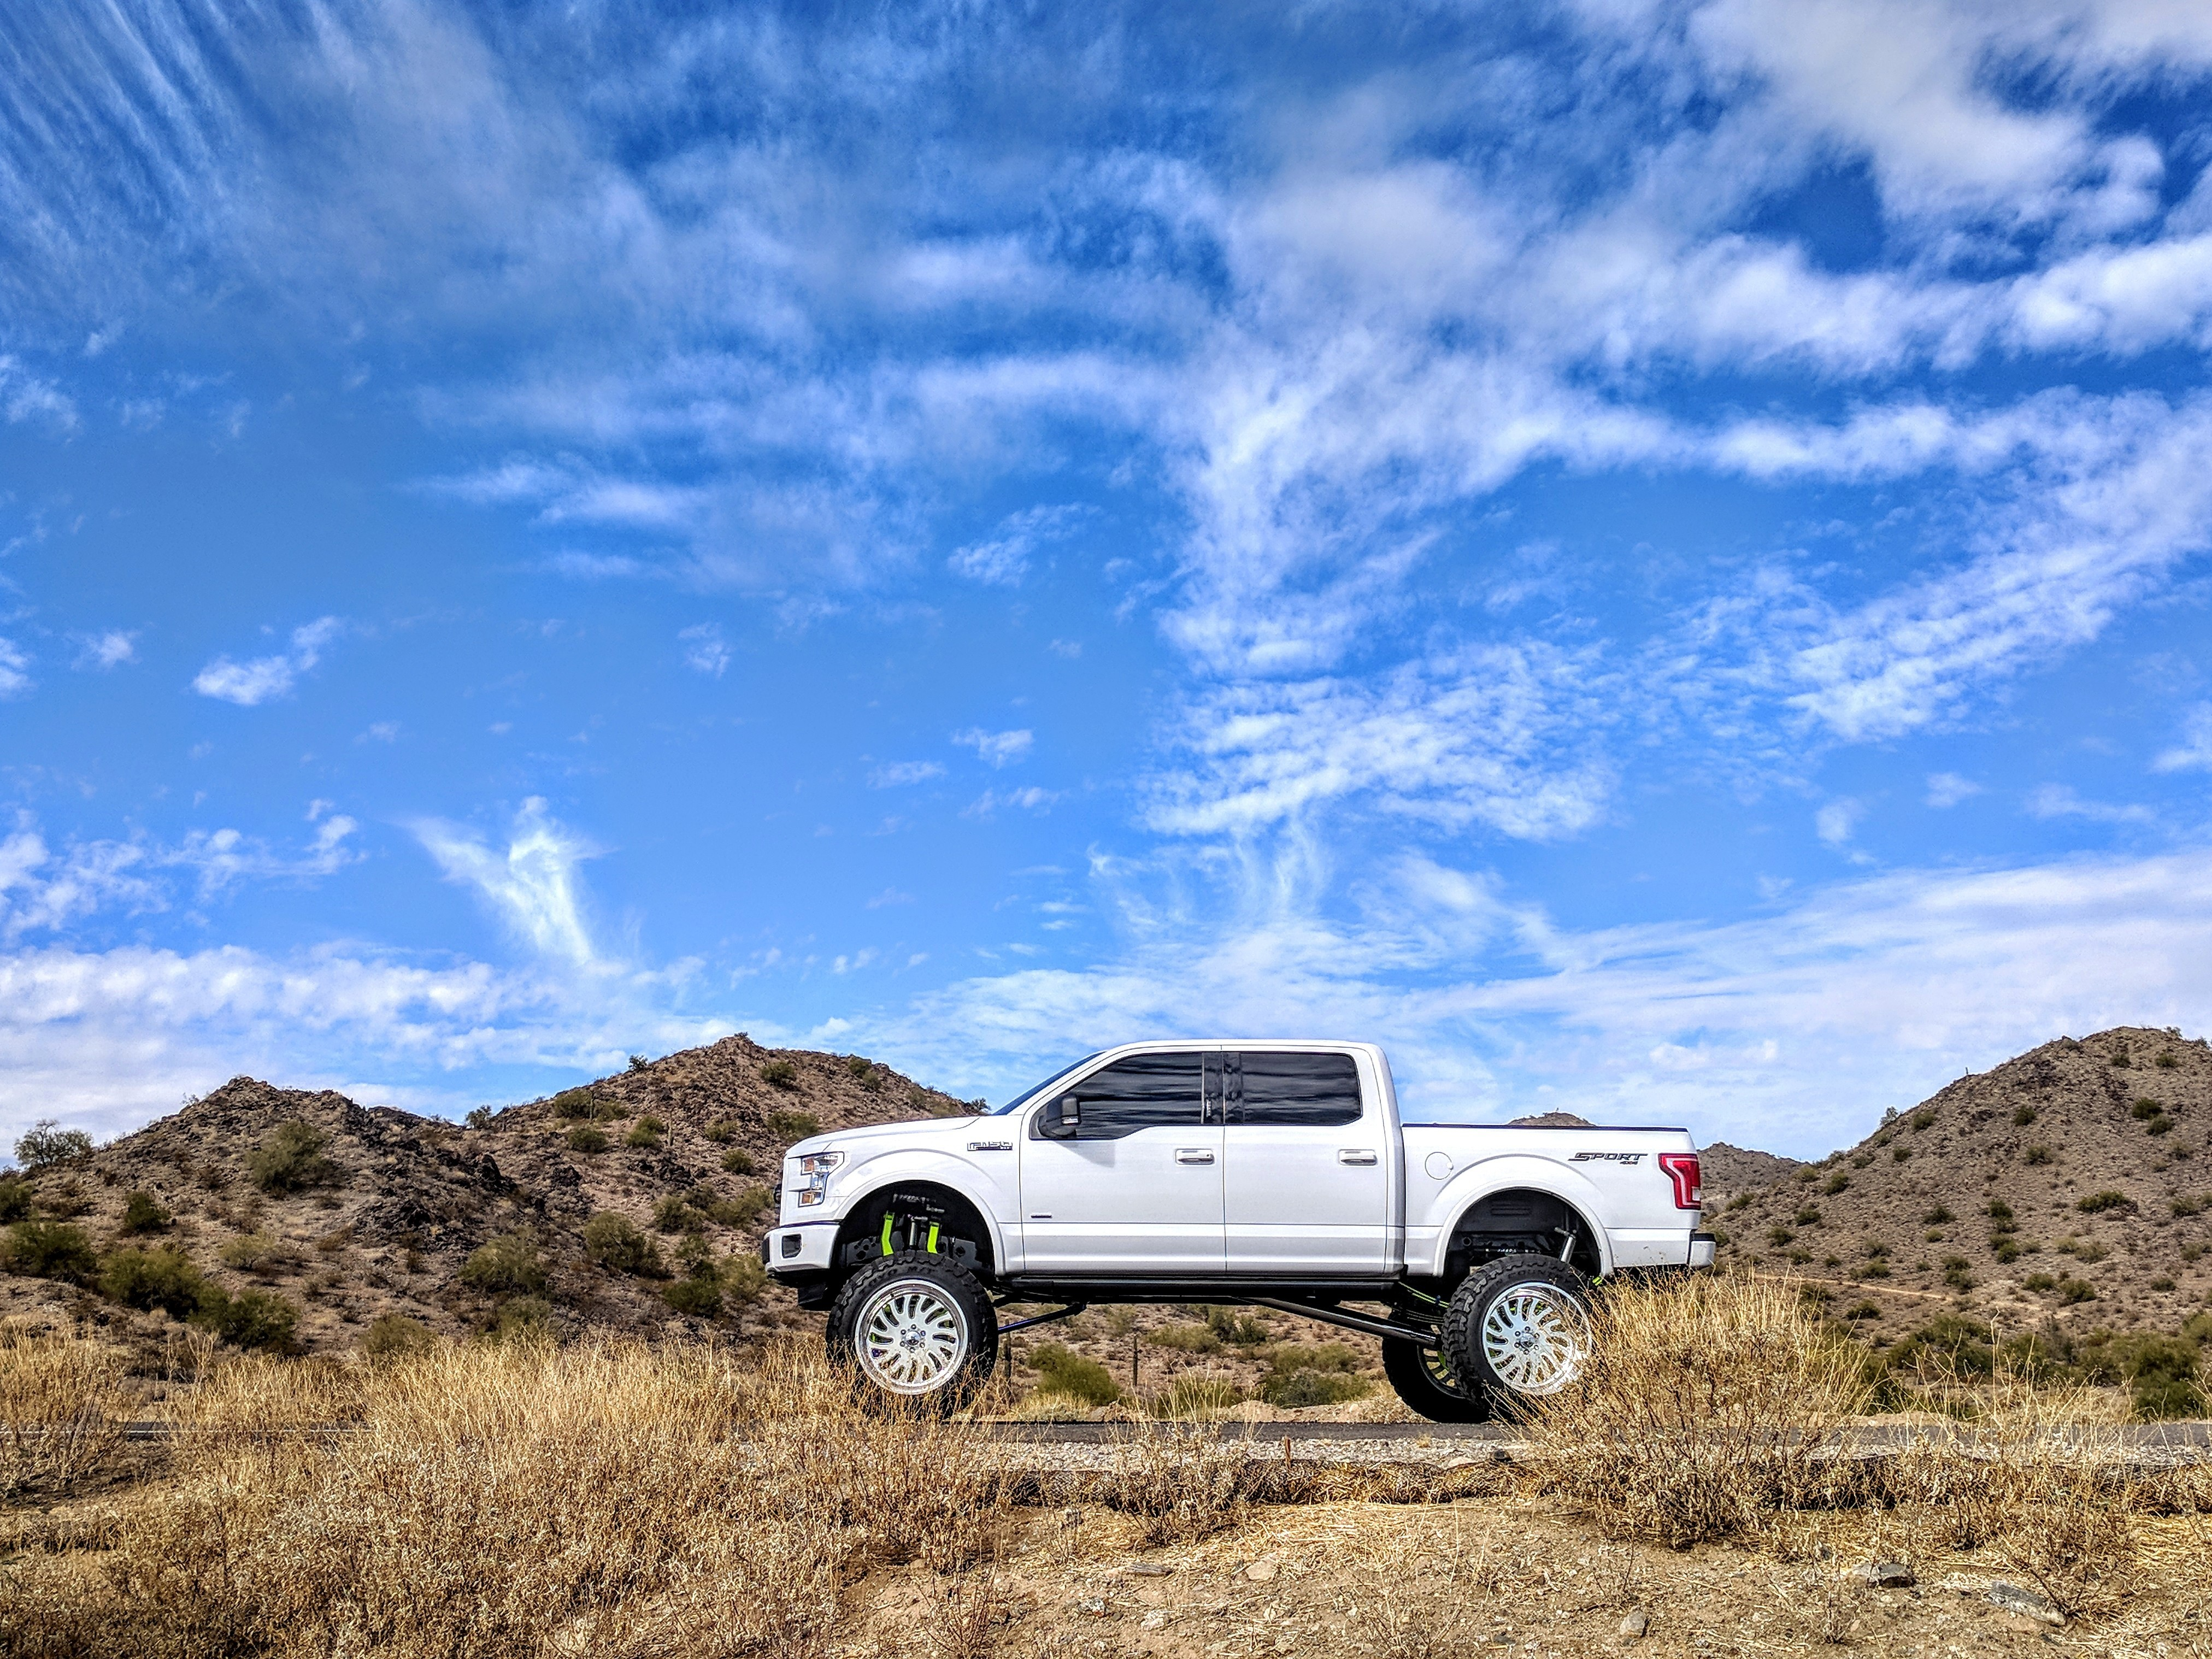 2015 Ford F 150 Regular Cab >> Ford F150 10-12 Inch Suspension Lift Kit 2015-2019